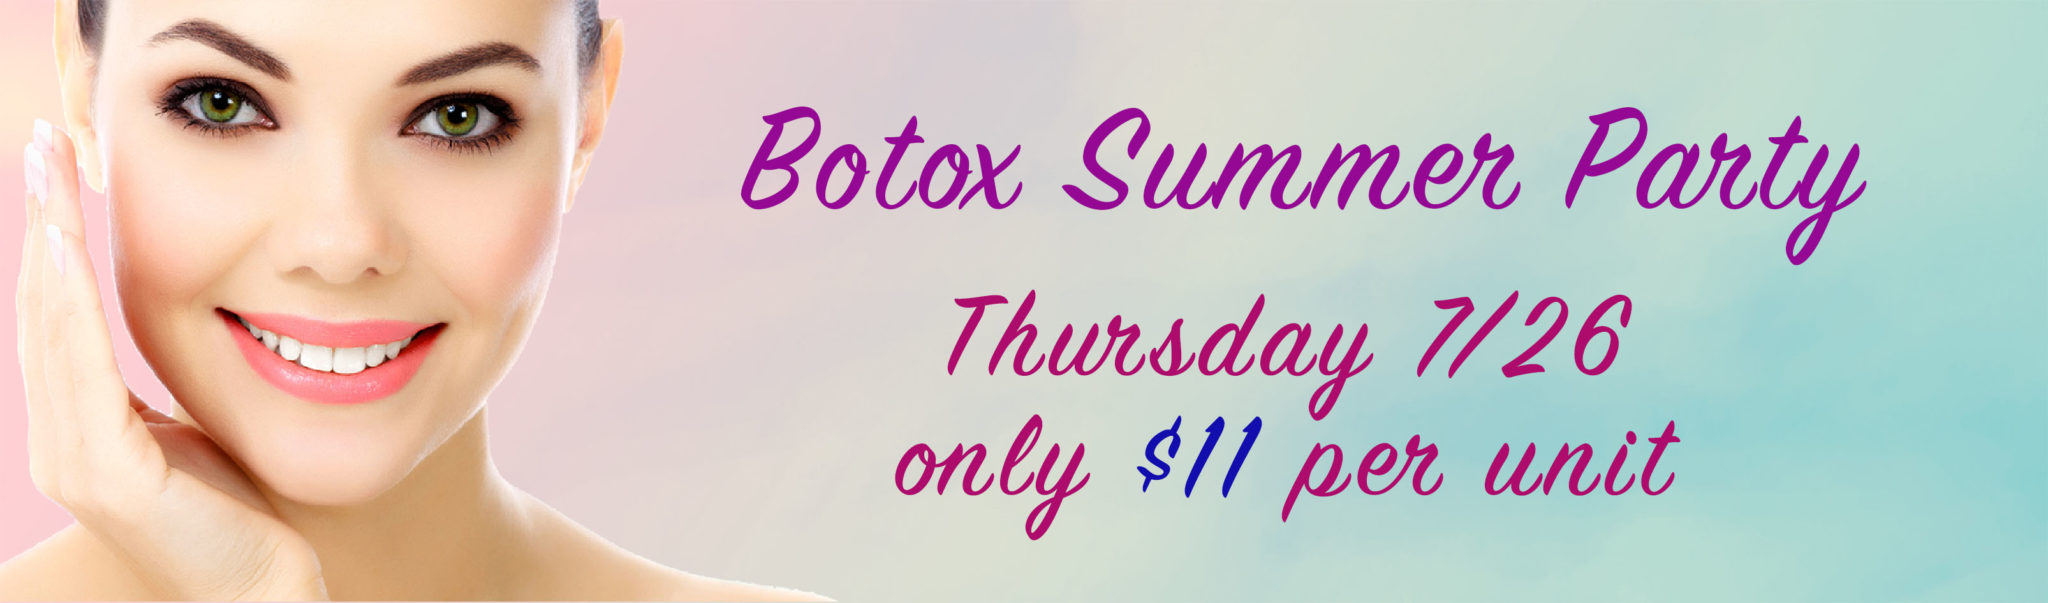 Botox summer party